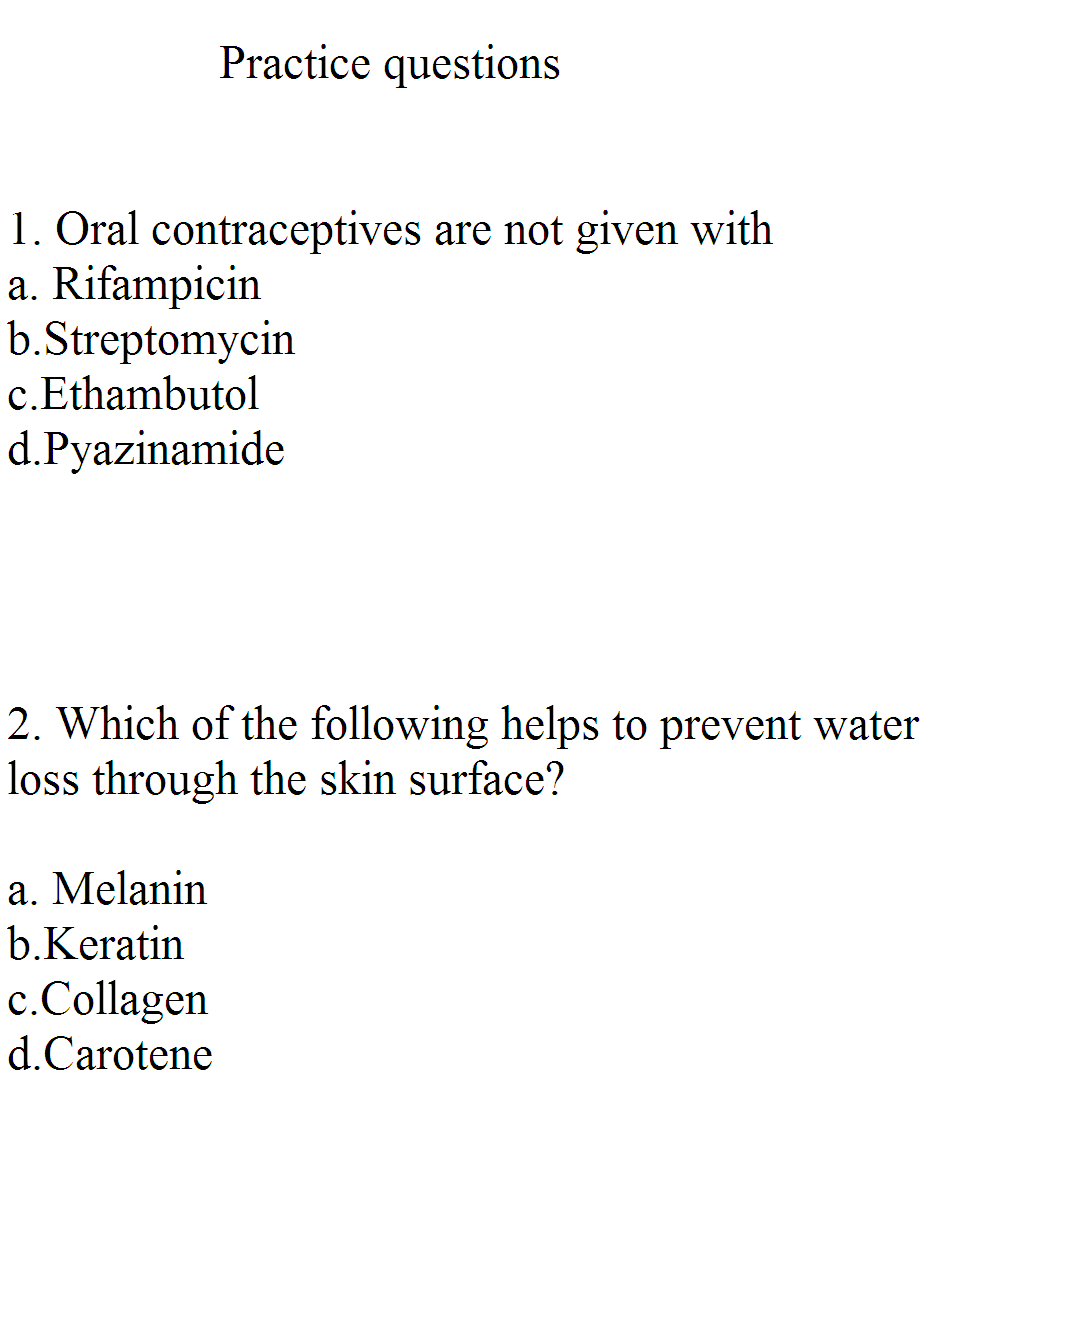 HAAD-MOH-DHA-PROMETRIC-RN SUPPORT: PRACTICE QUESTIONS